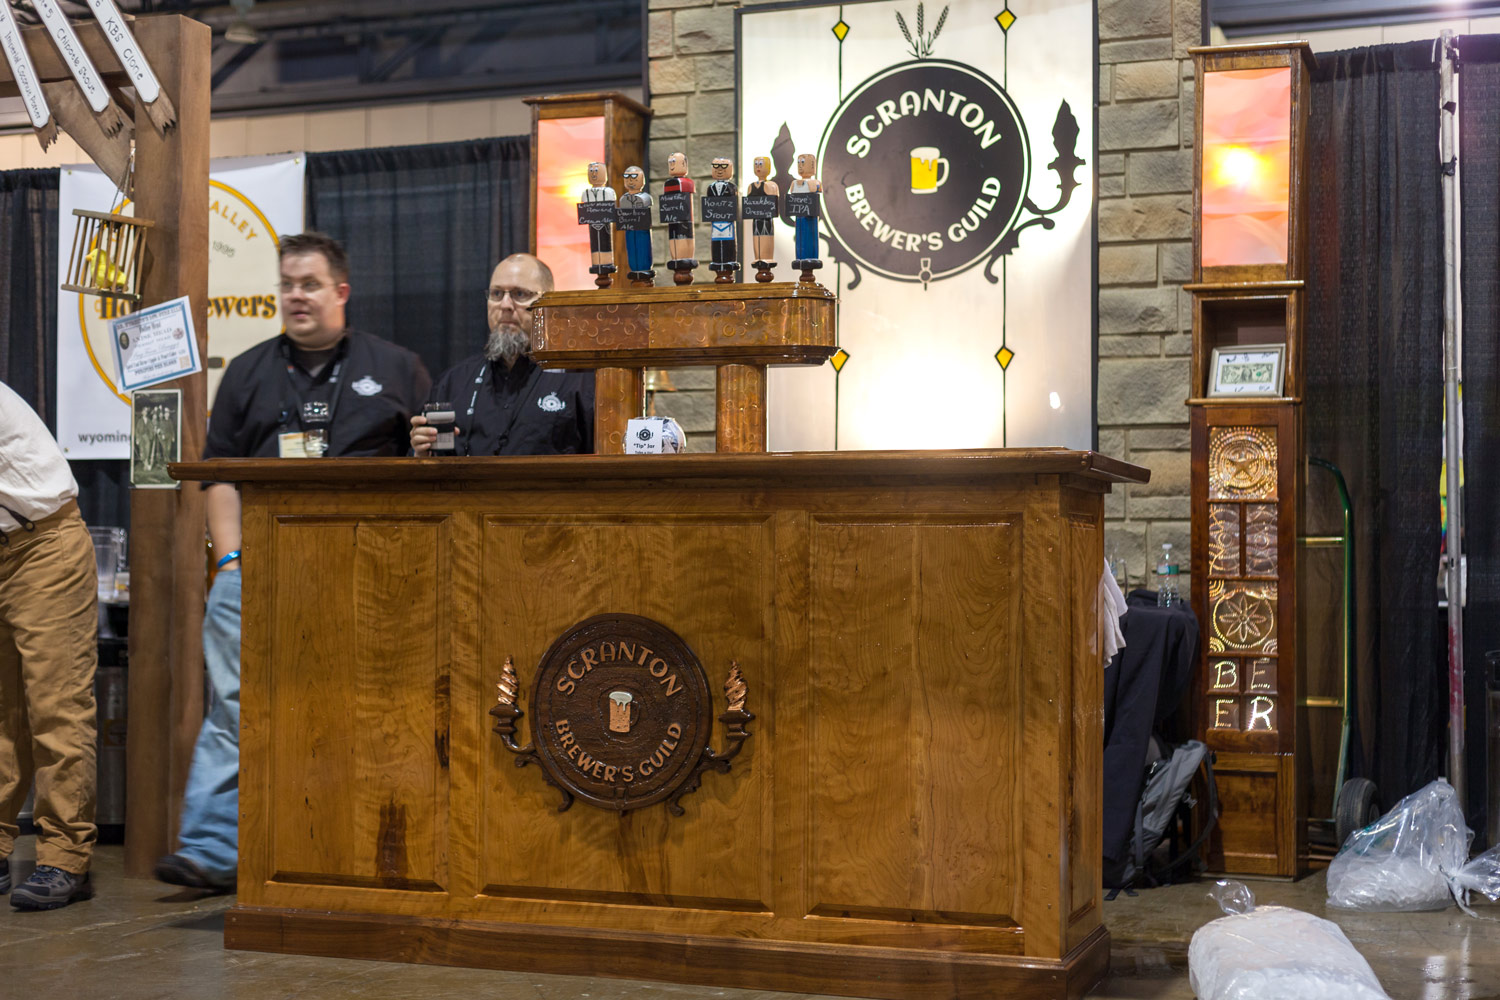 This collapsable bar is design to be set up and ready to pour a beer in 10 minutes. Its cherry and patenated copper design evokes the memory of the prohibition days of the 1930's.